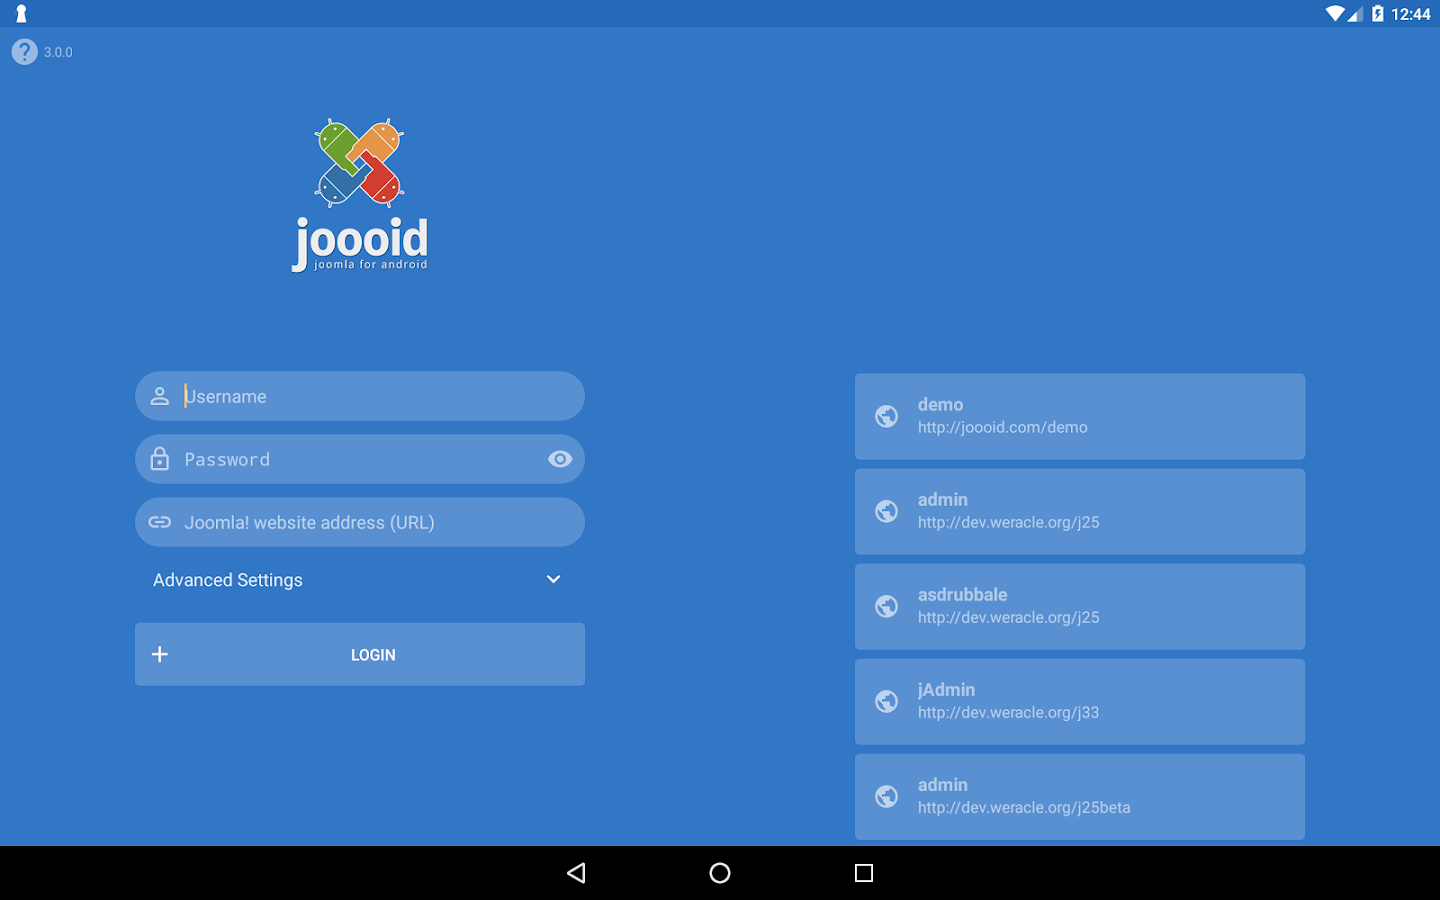 Joooid! Joomla for Android- screenshot